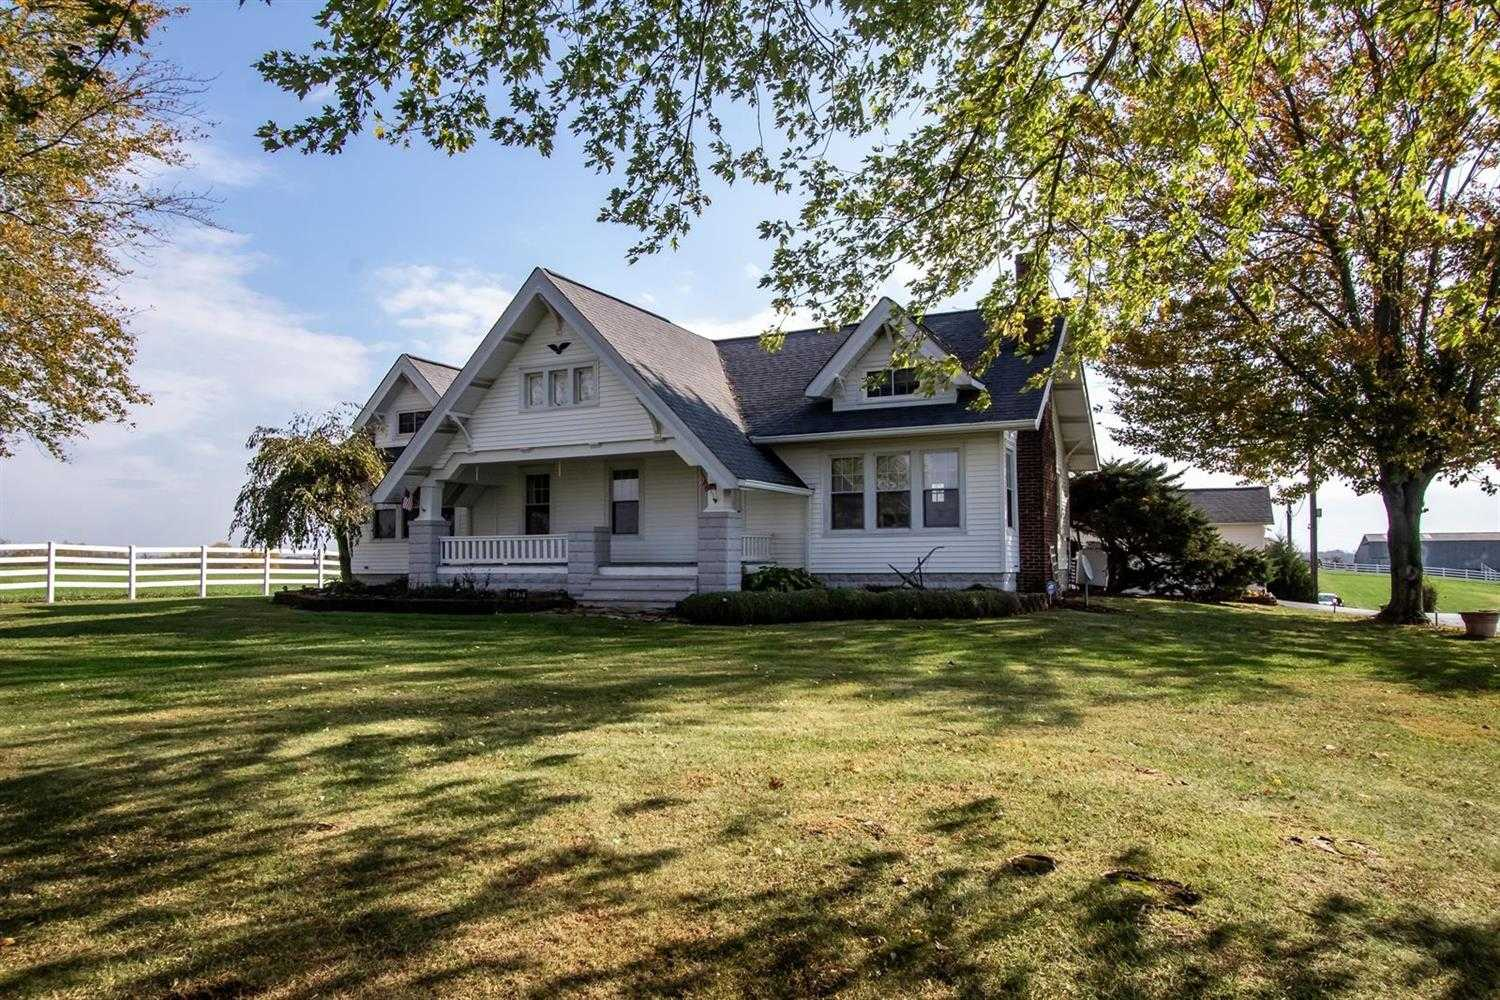 6422 Old US Rt 68 Pleasant Twp,OH 45121 1675648